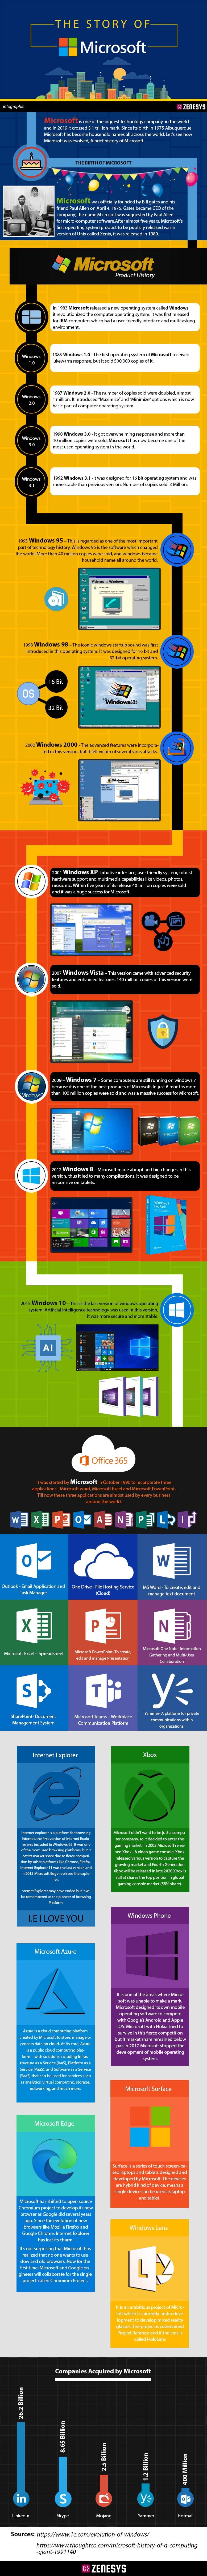 The Story of Microsoft #infographic